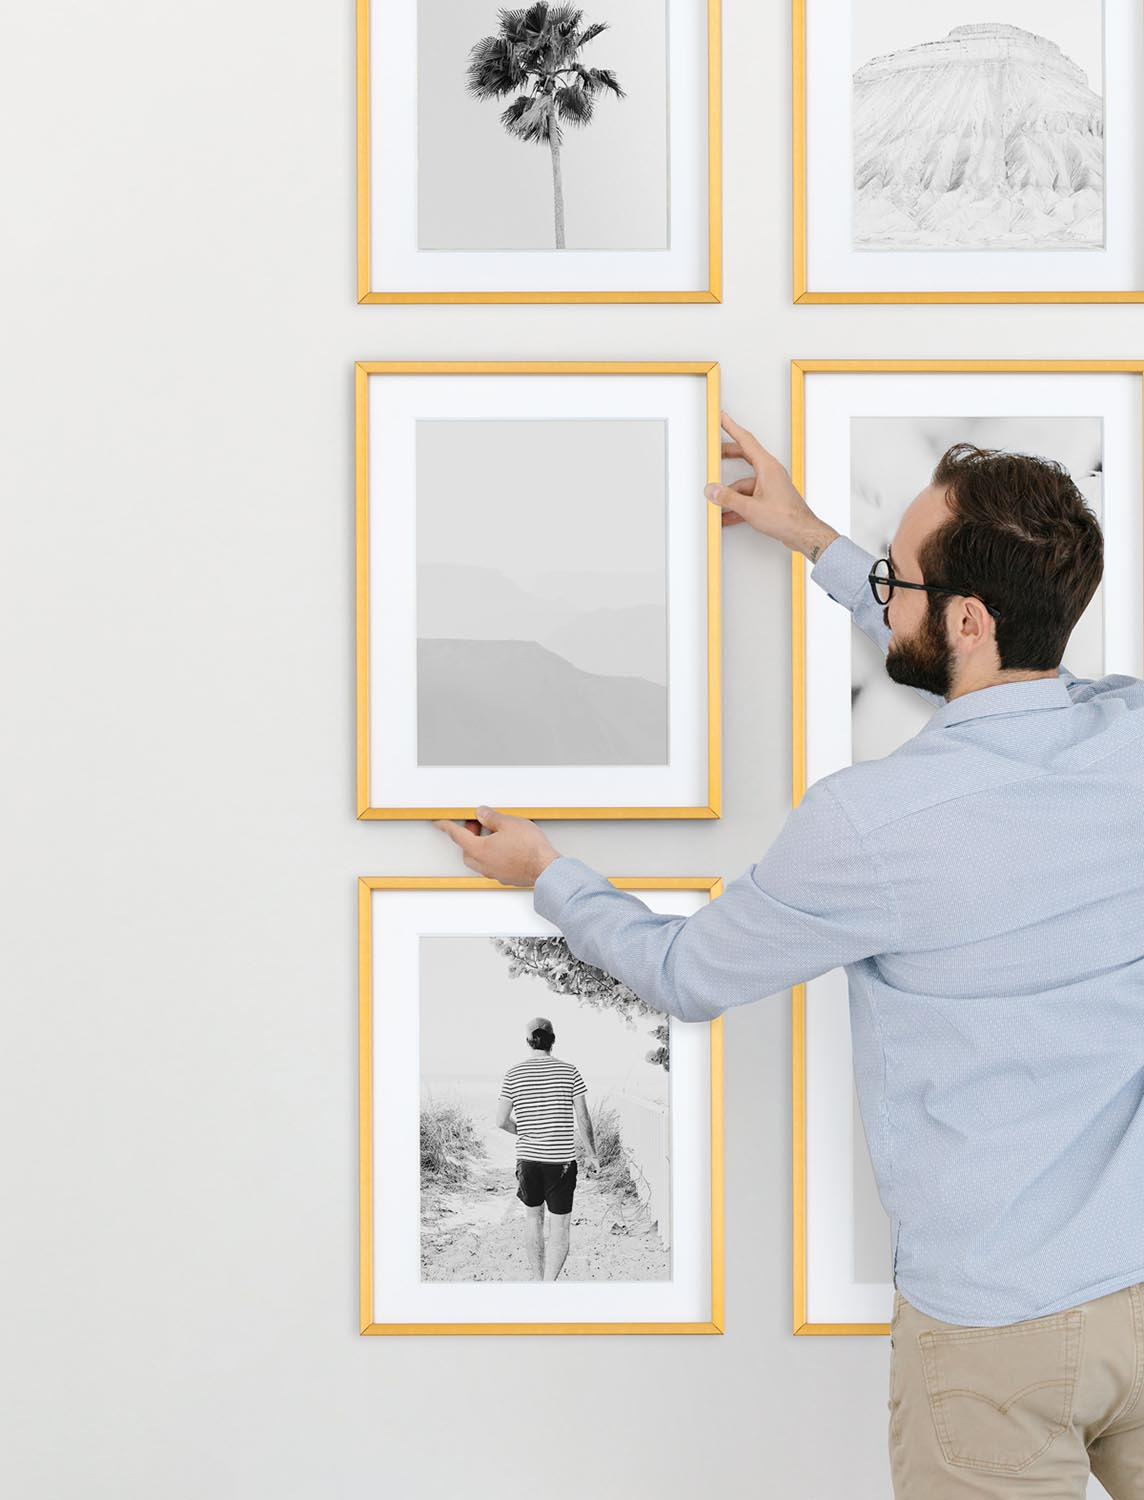 Man hanging framed black and white photo to complete gallery wall